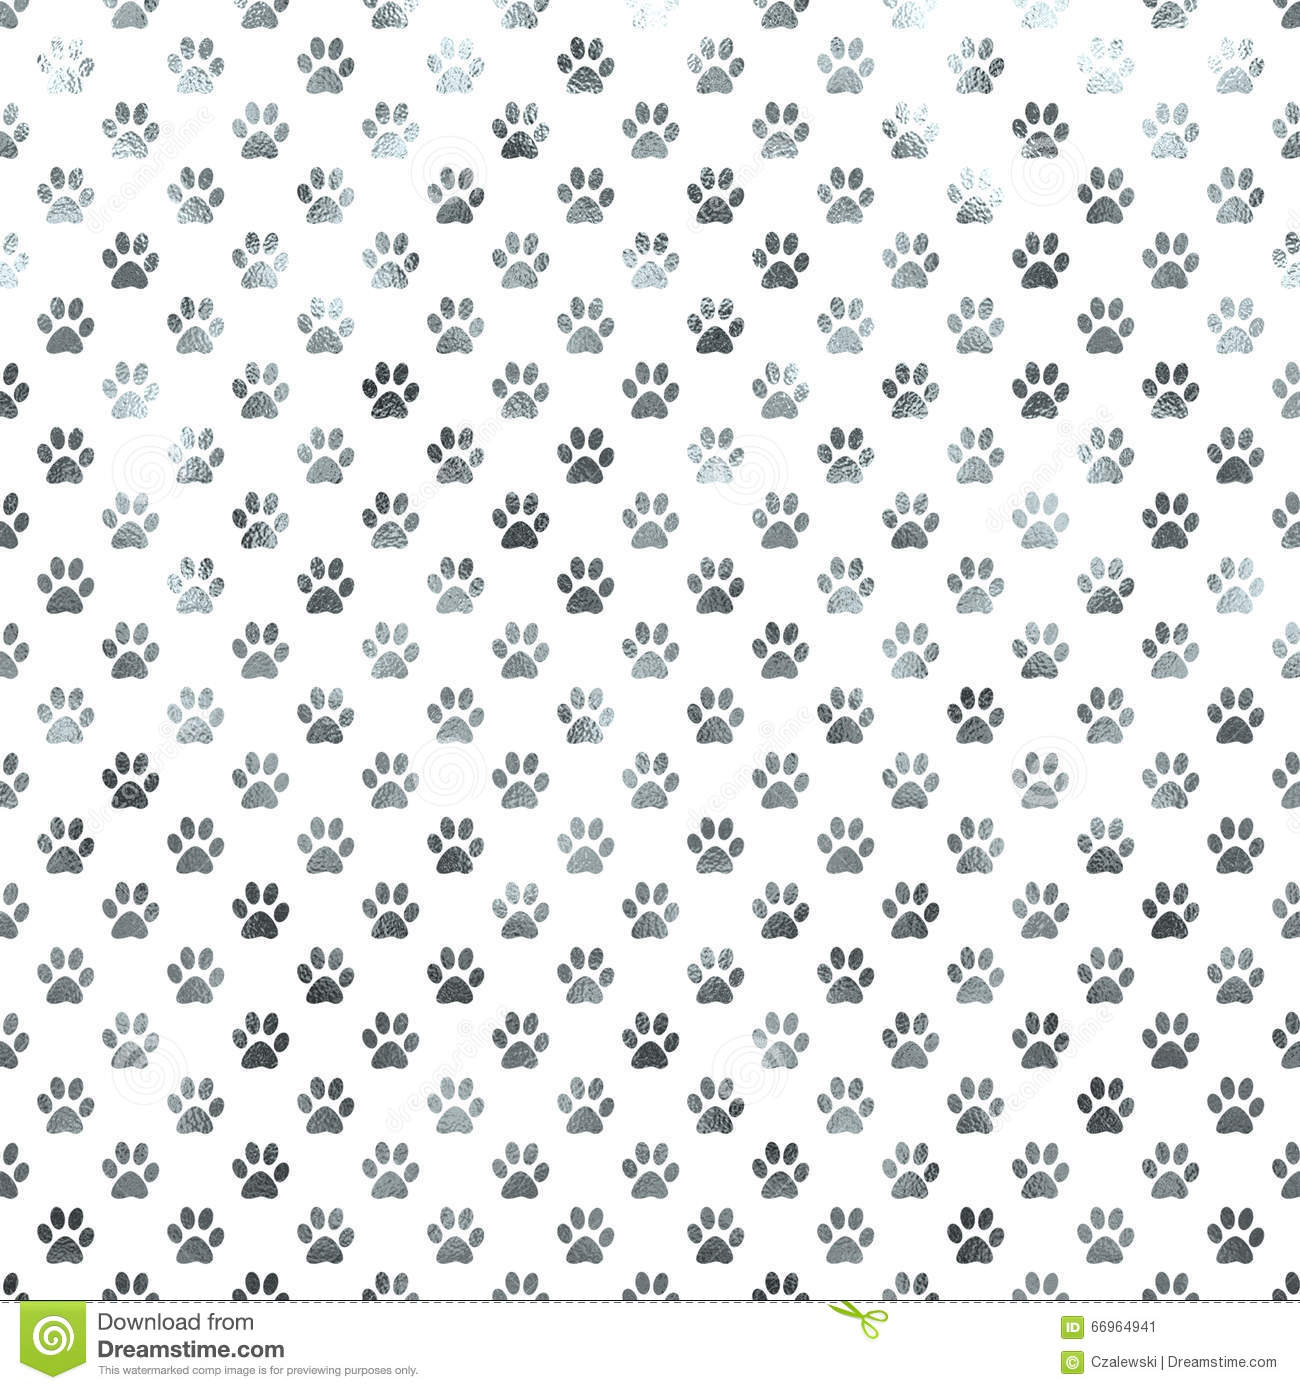 Polca Dot Paws Background de Paw White Silver Metallic Foil do cão